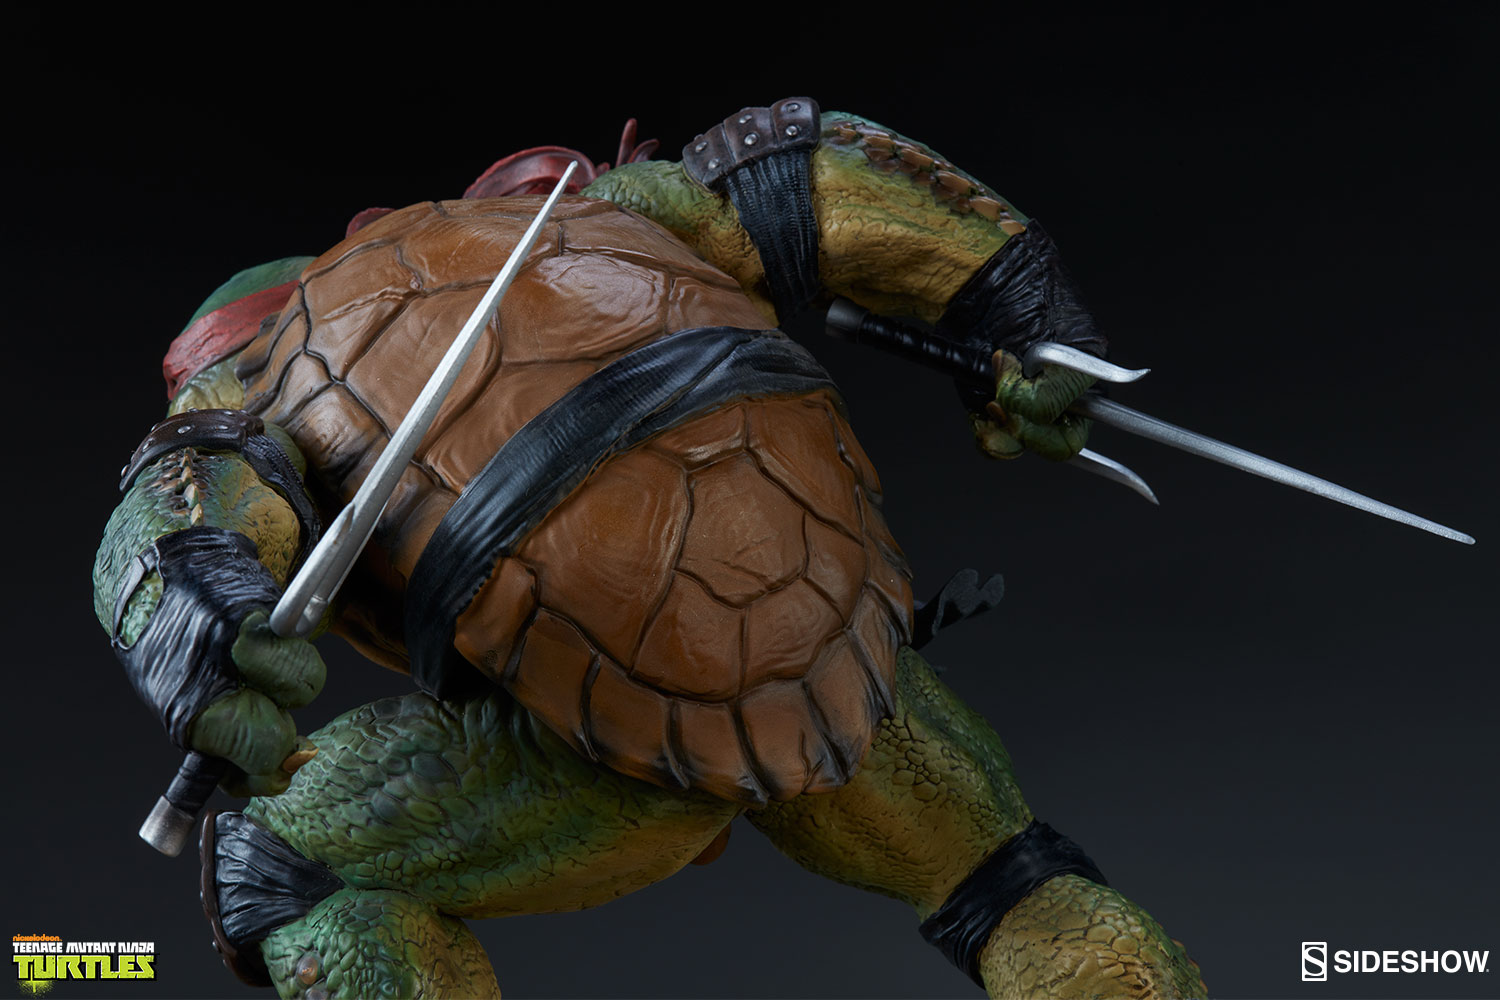 TMNT Raphael Statue by Sideshow Collectibles | Sideshow ...